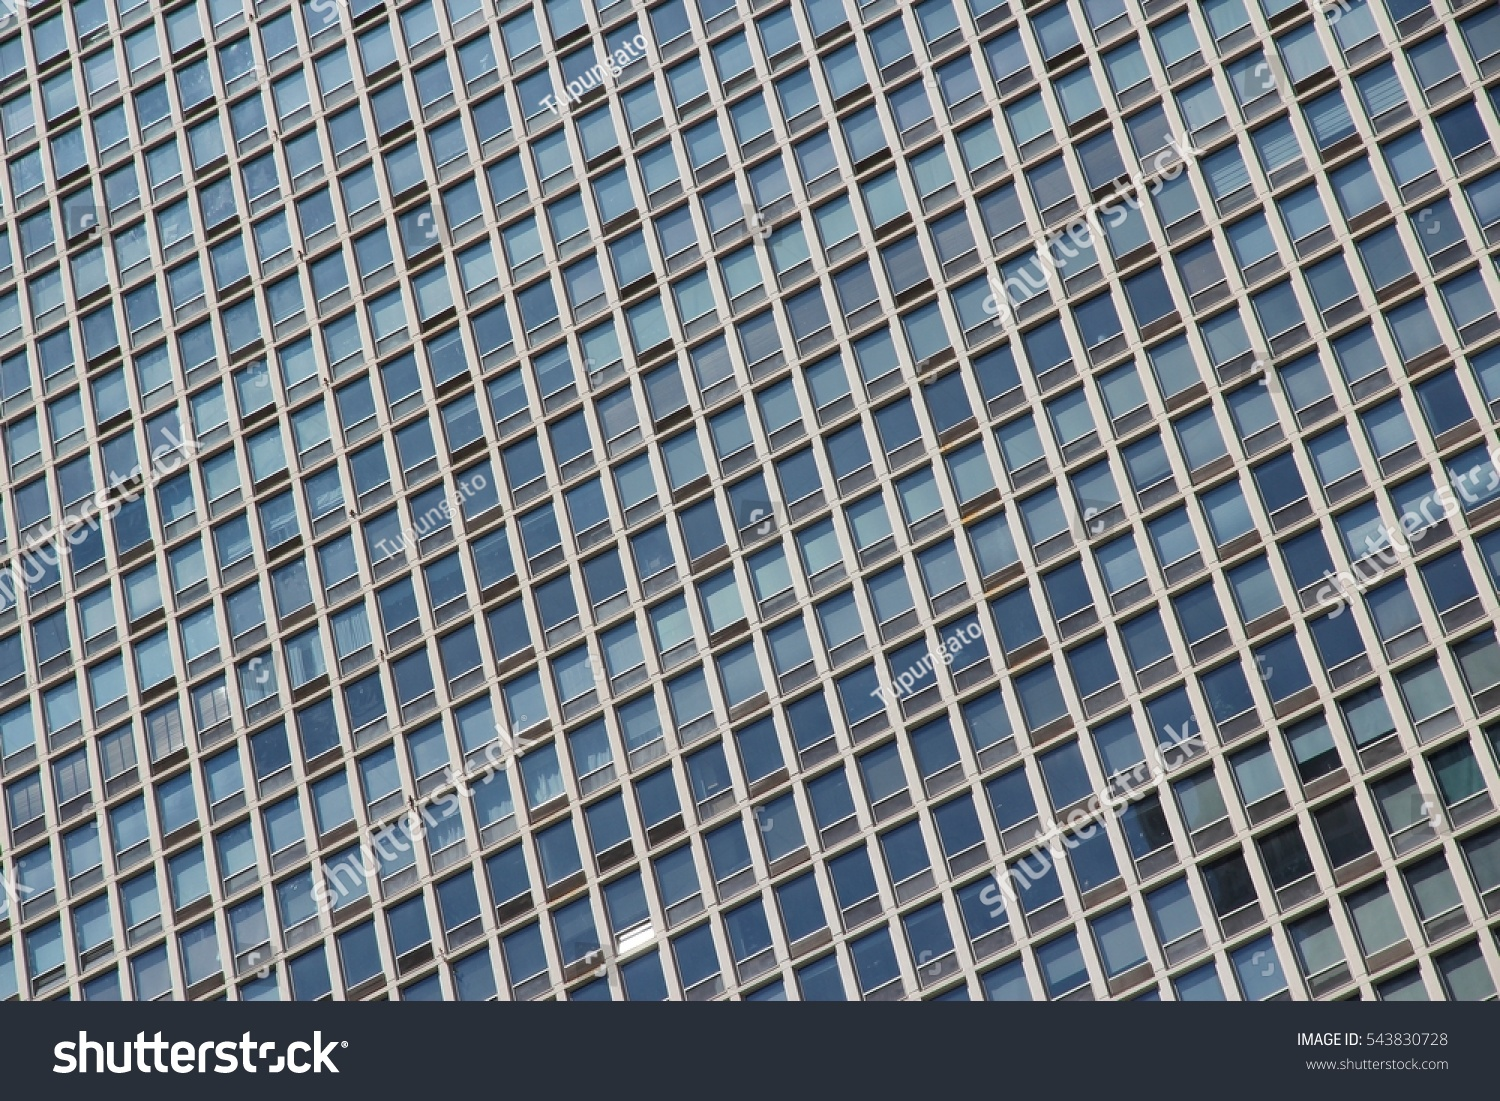 Modern Architecture Windows abstract skyscraper windows background modern architecture stock